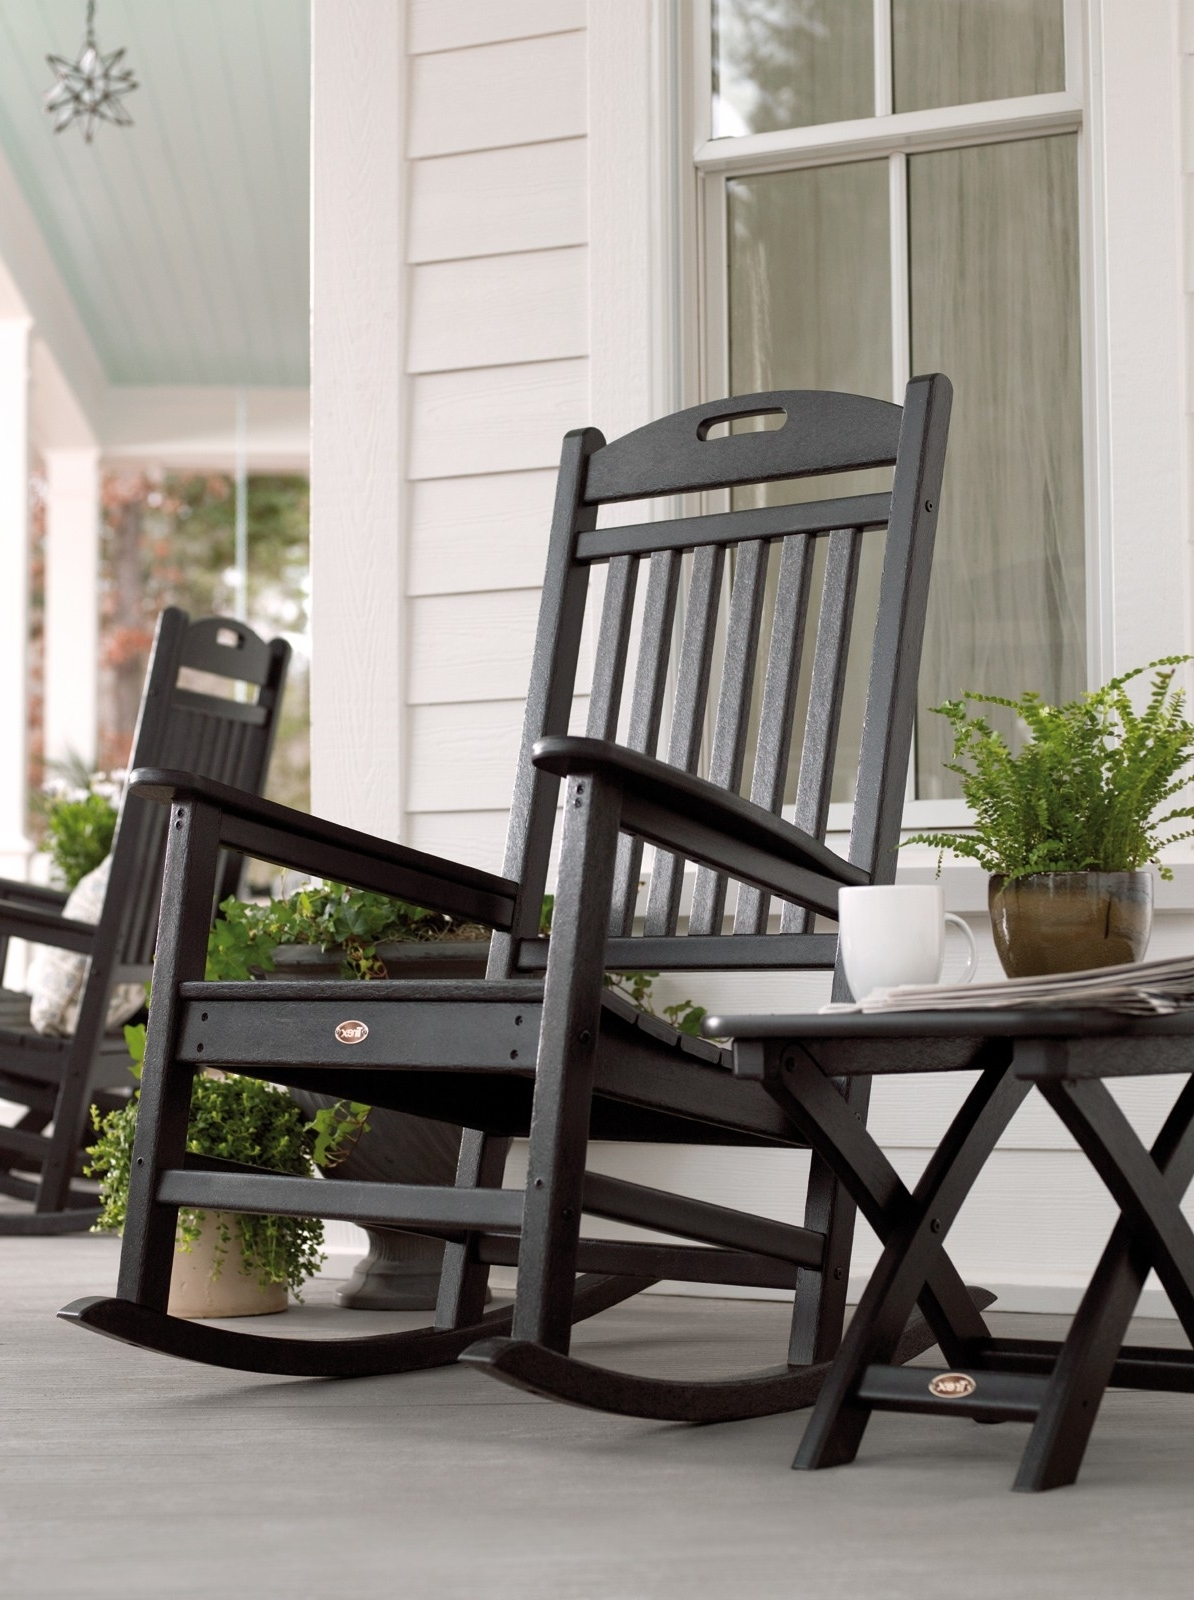 2018 Patio & Garden : Outdoor Rocking Chair Seat Cushions Outdoor Rocking Pertaining To Outside Rocking Chair Sets (View 4 of 20)